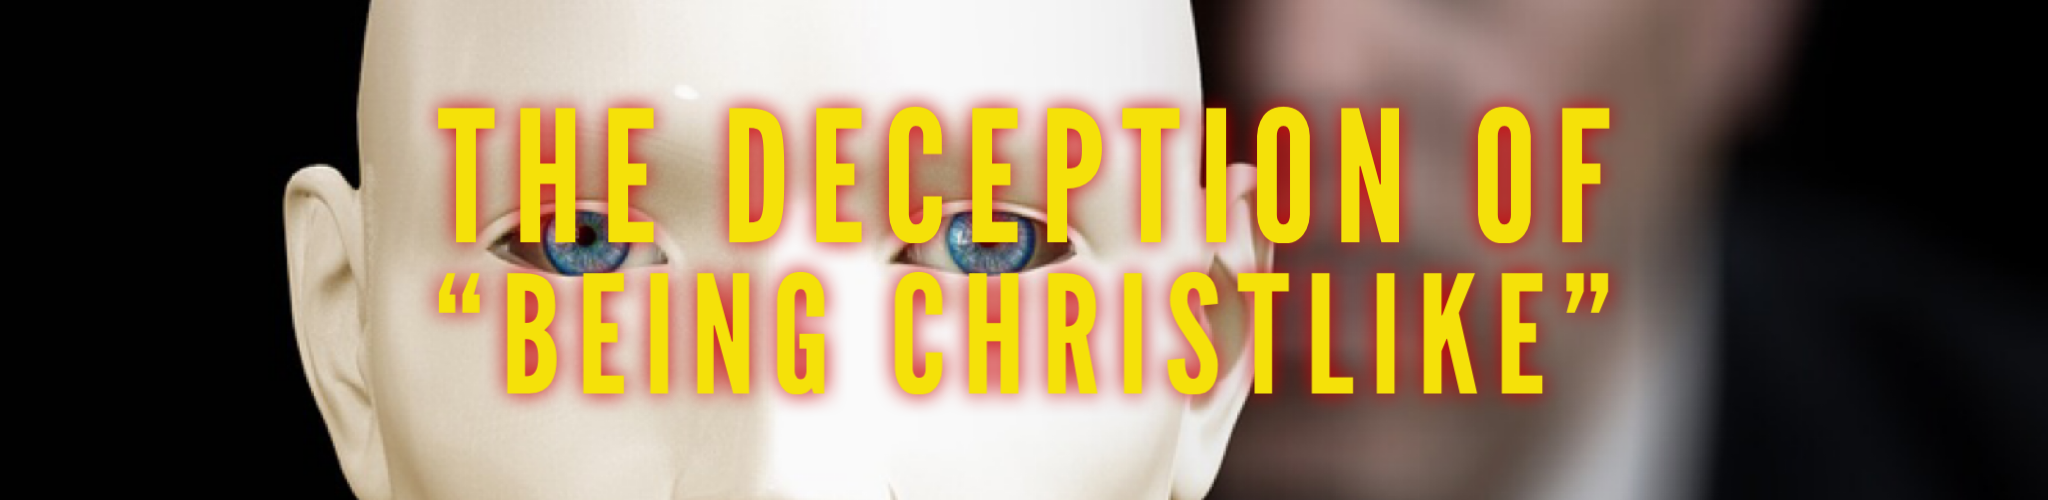 The deception of being Christlike